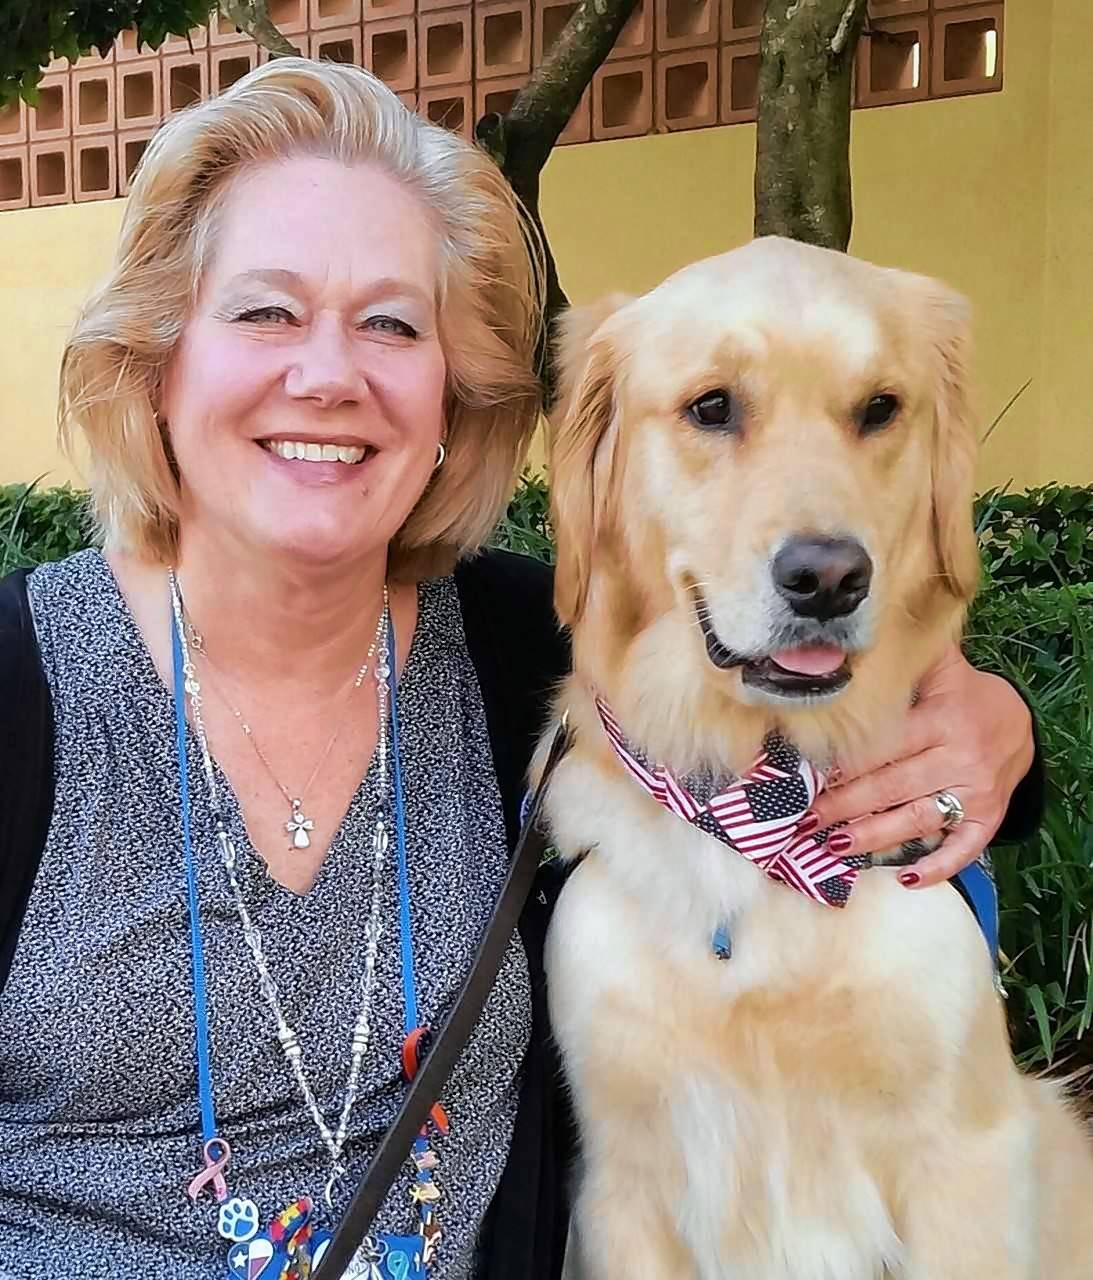 Jenni Hoffmeyer of Grayslake and her dog, Tobias, were among those dispatched to Parkland, Florida to offer support in the wake of the shootings at Marjory Stoneman Douglas High School.